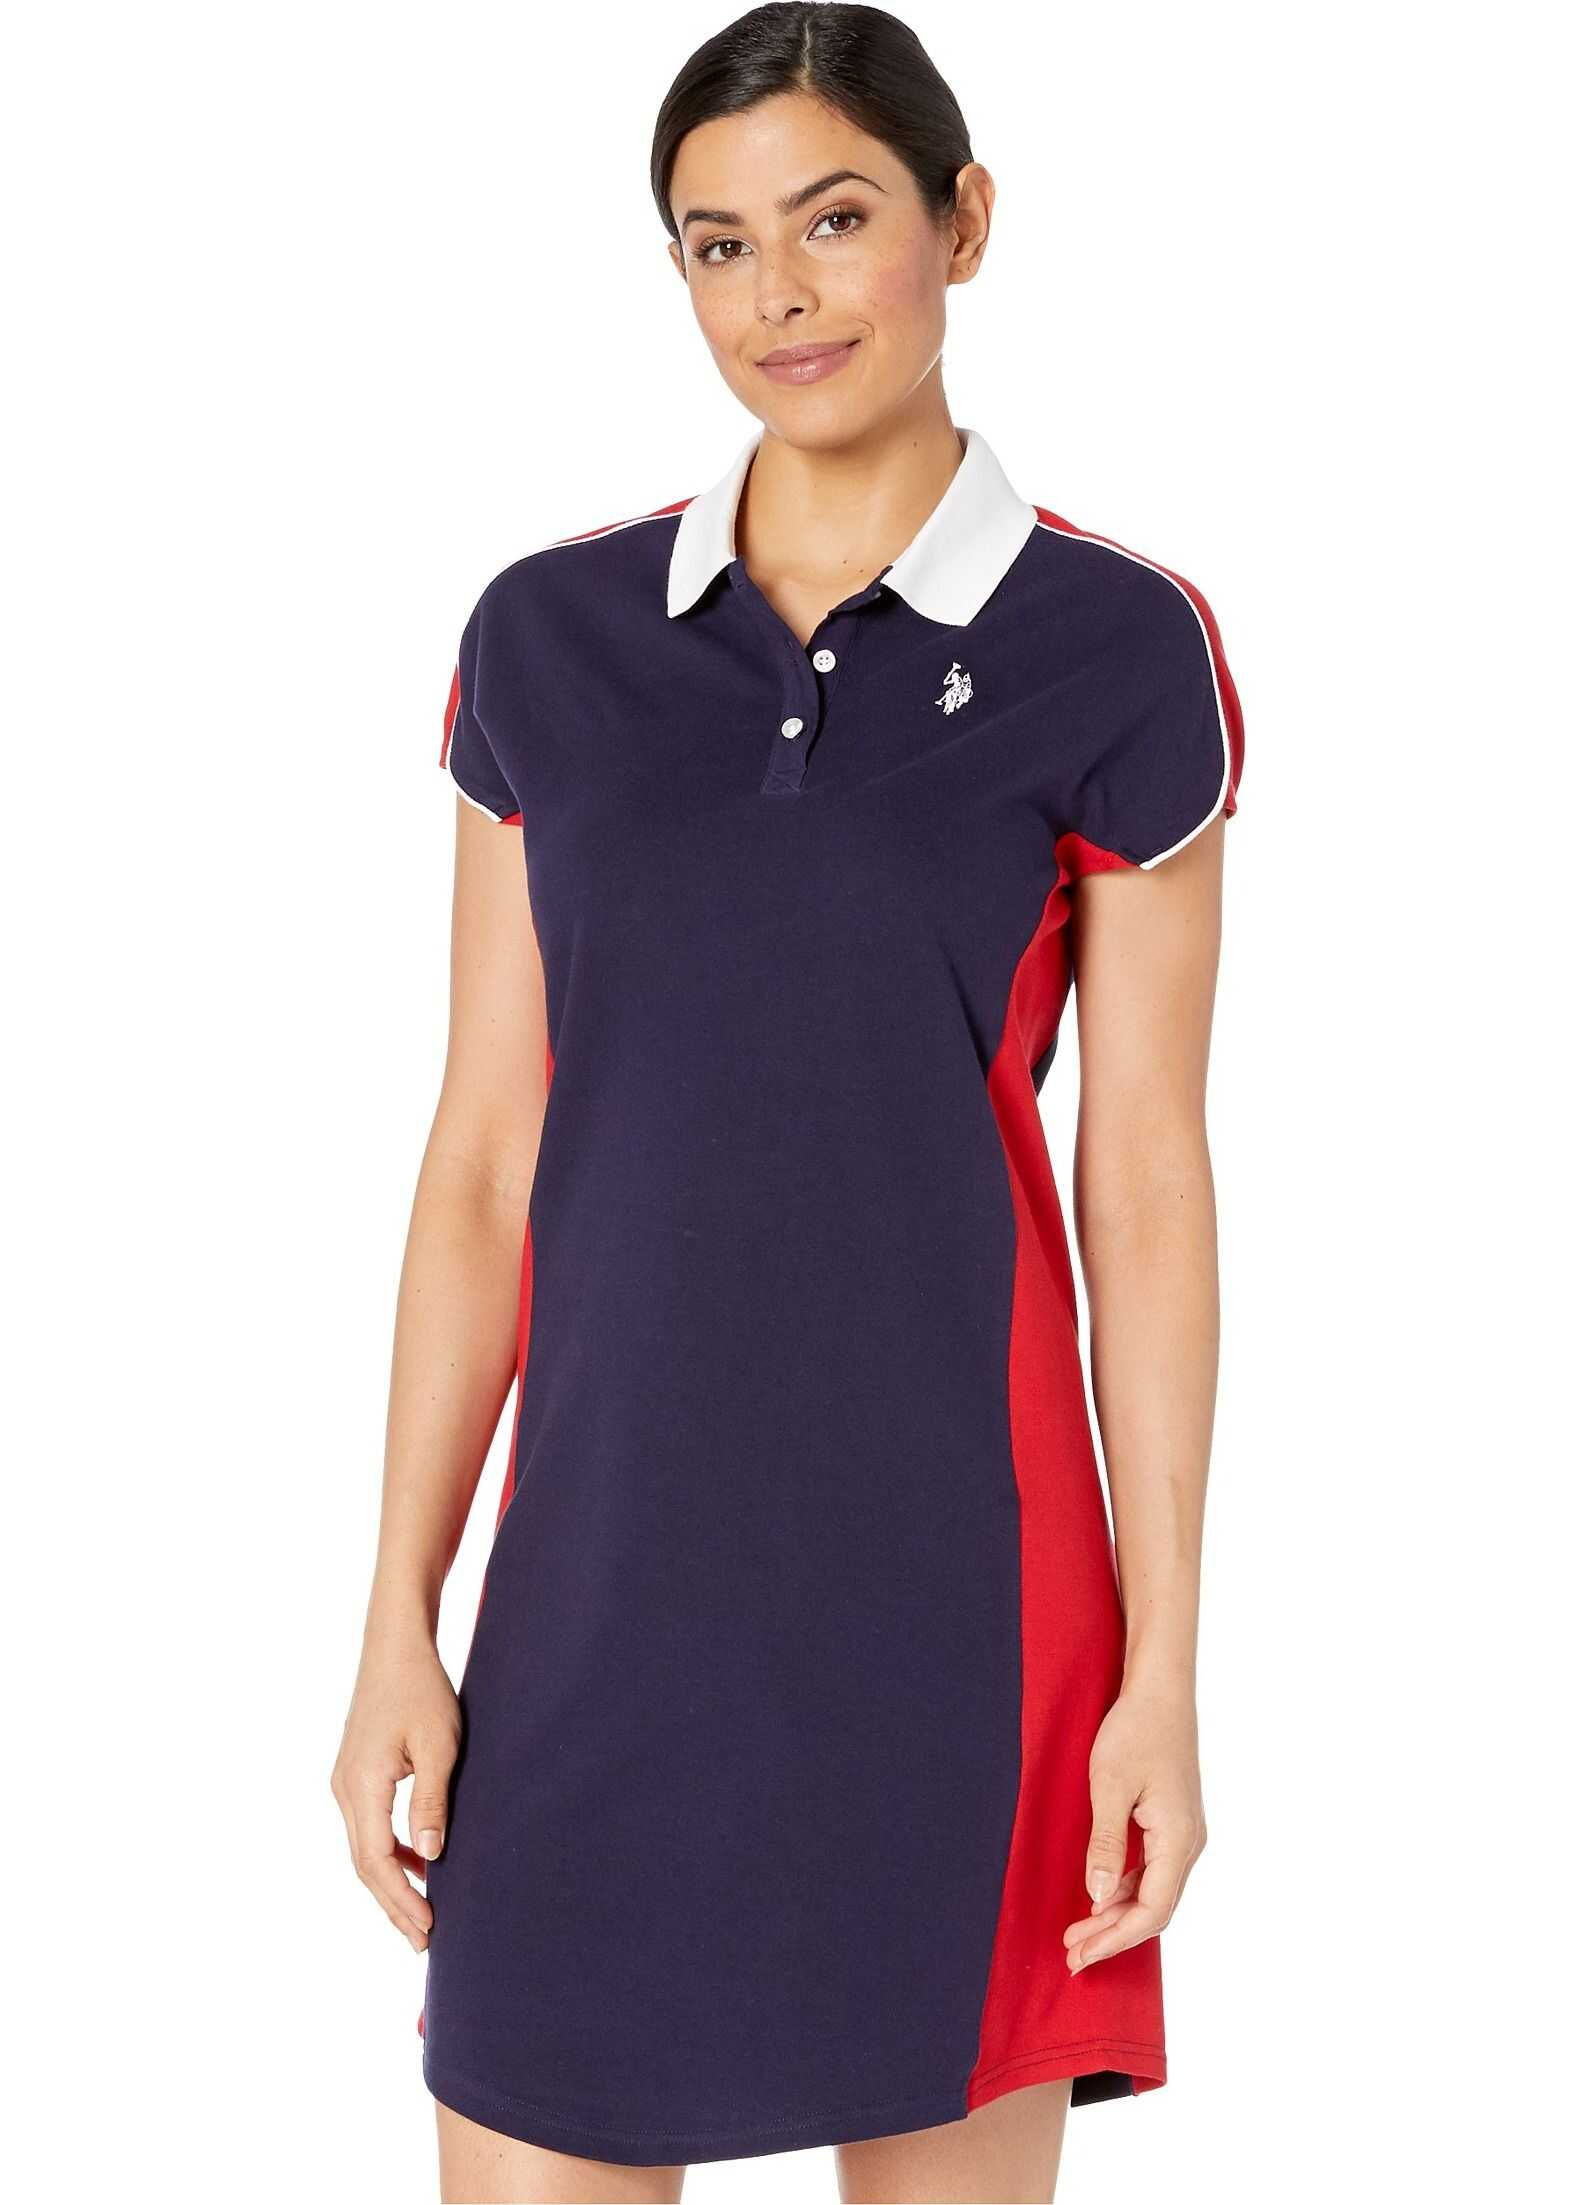 U.S. POLO ASSN. Side Panel Pique Dress Evening Blue